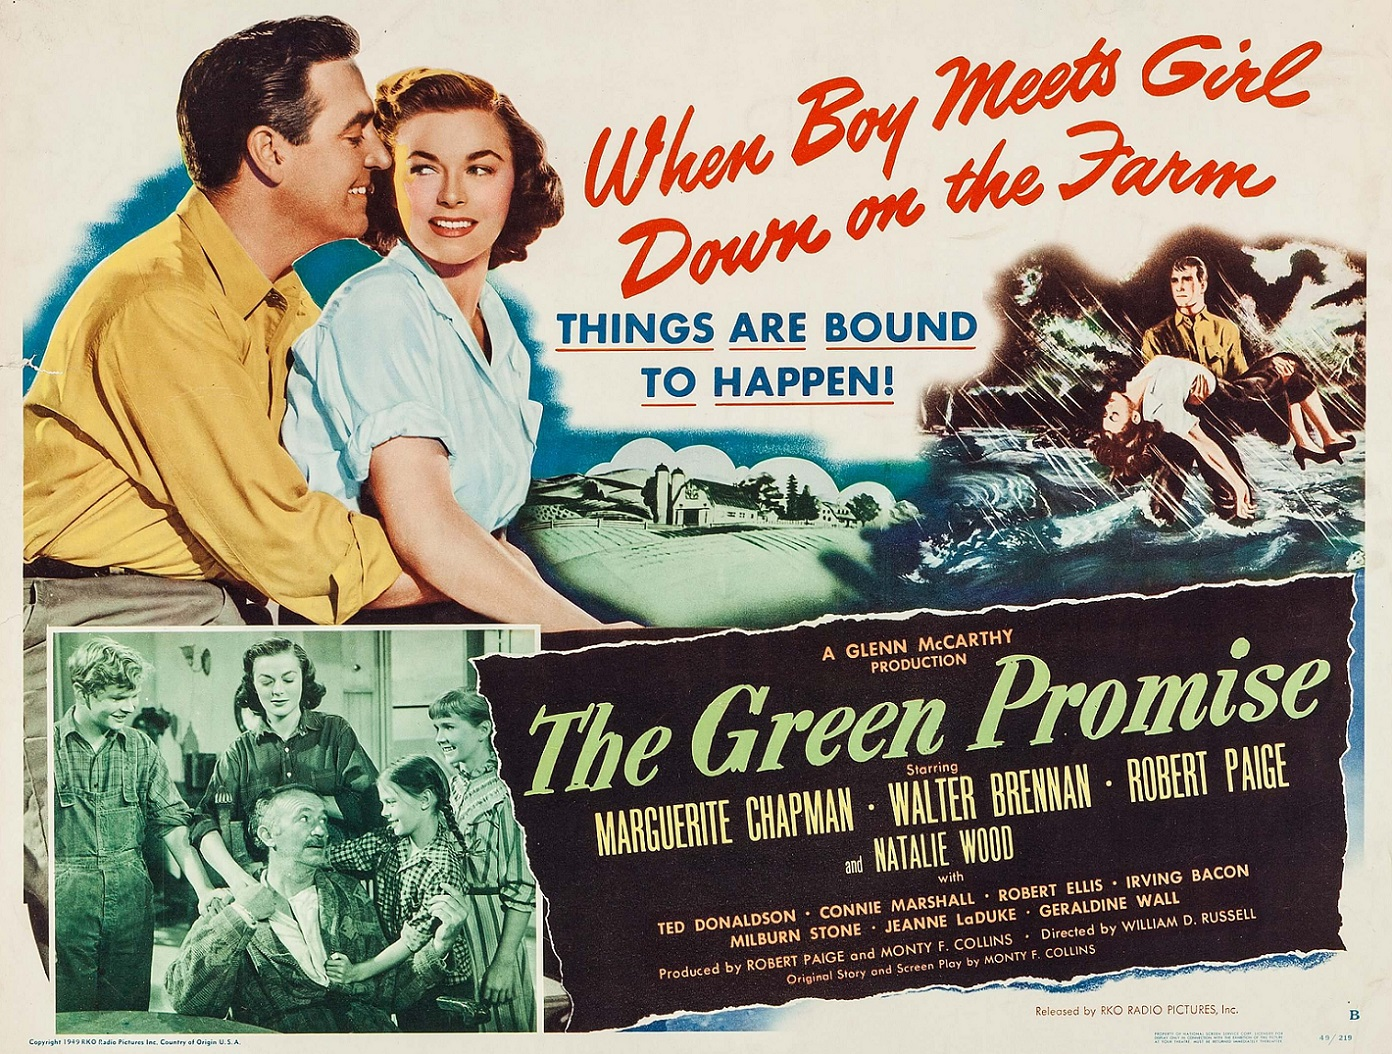 THE GREEN PROMISE (1949) WEB SITE